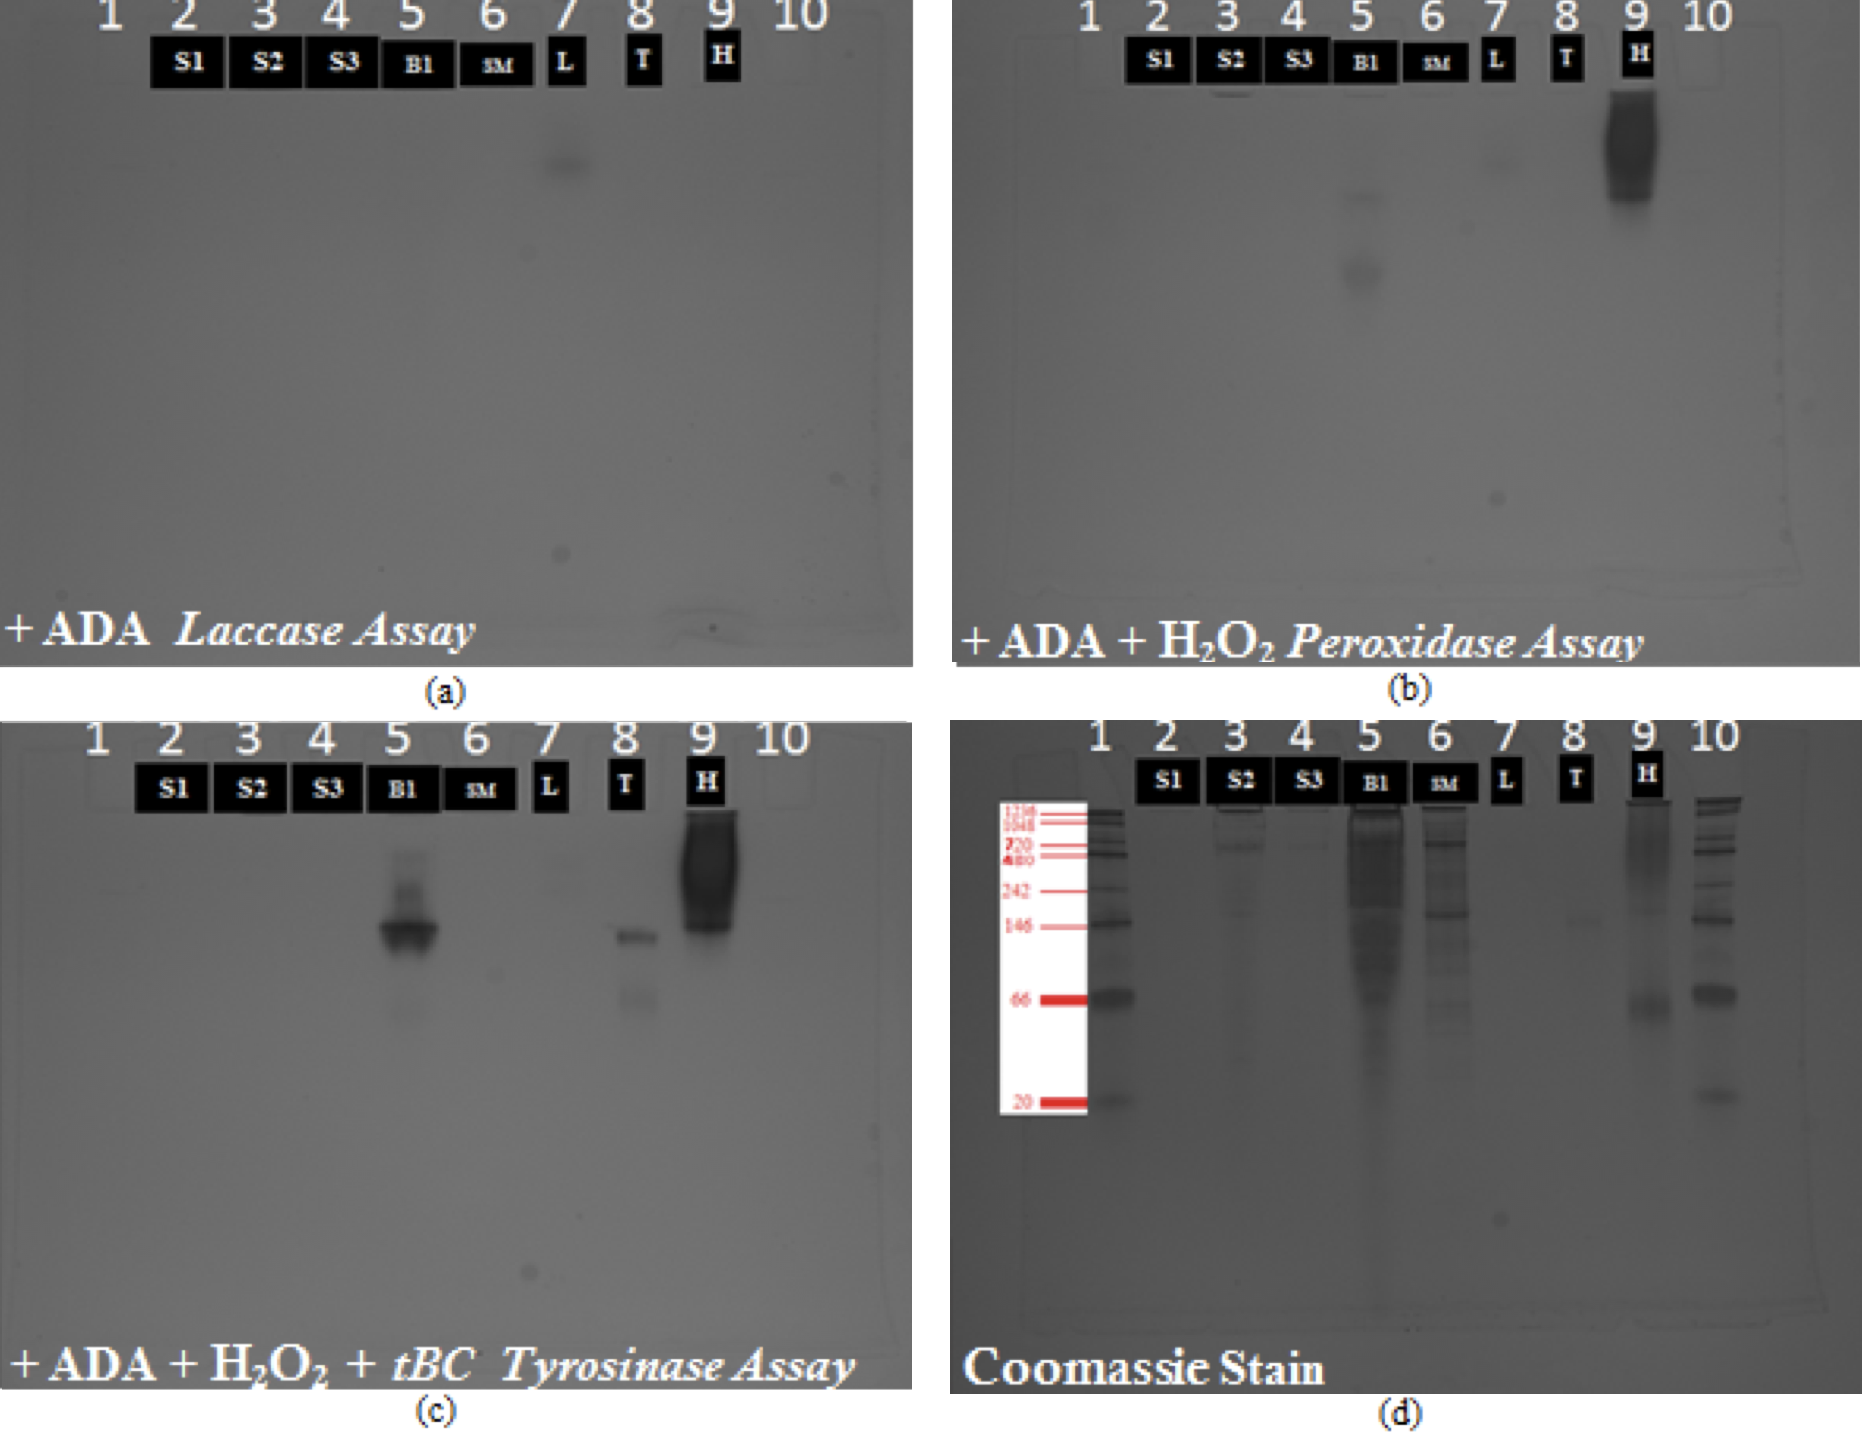 Figure 2. Native PAGE gels. S1, S2, S3: Longitudinal Canal lysate sample. B1: Barnacle body, SM: Sub mantle tissue. L: Laccase, T: Tyrosinase, H: HRP. a) First Step - Laccase activity assay via ADA substrate b) Second Step - HRP activity assay via H2O2 substrate c) Third Step - Tyrosinase activity assay via tBC d) Fourth Step - Coomassie blue stain